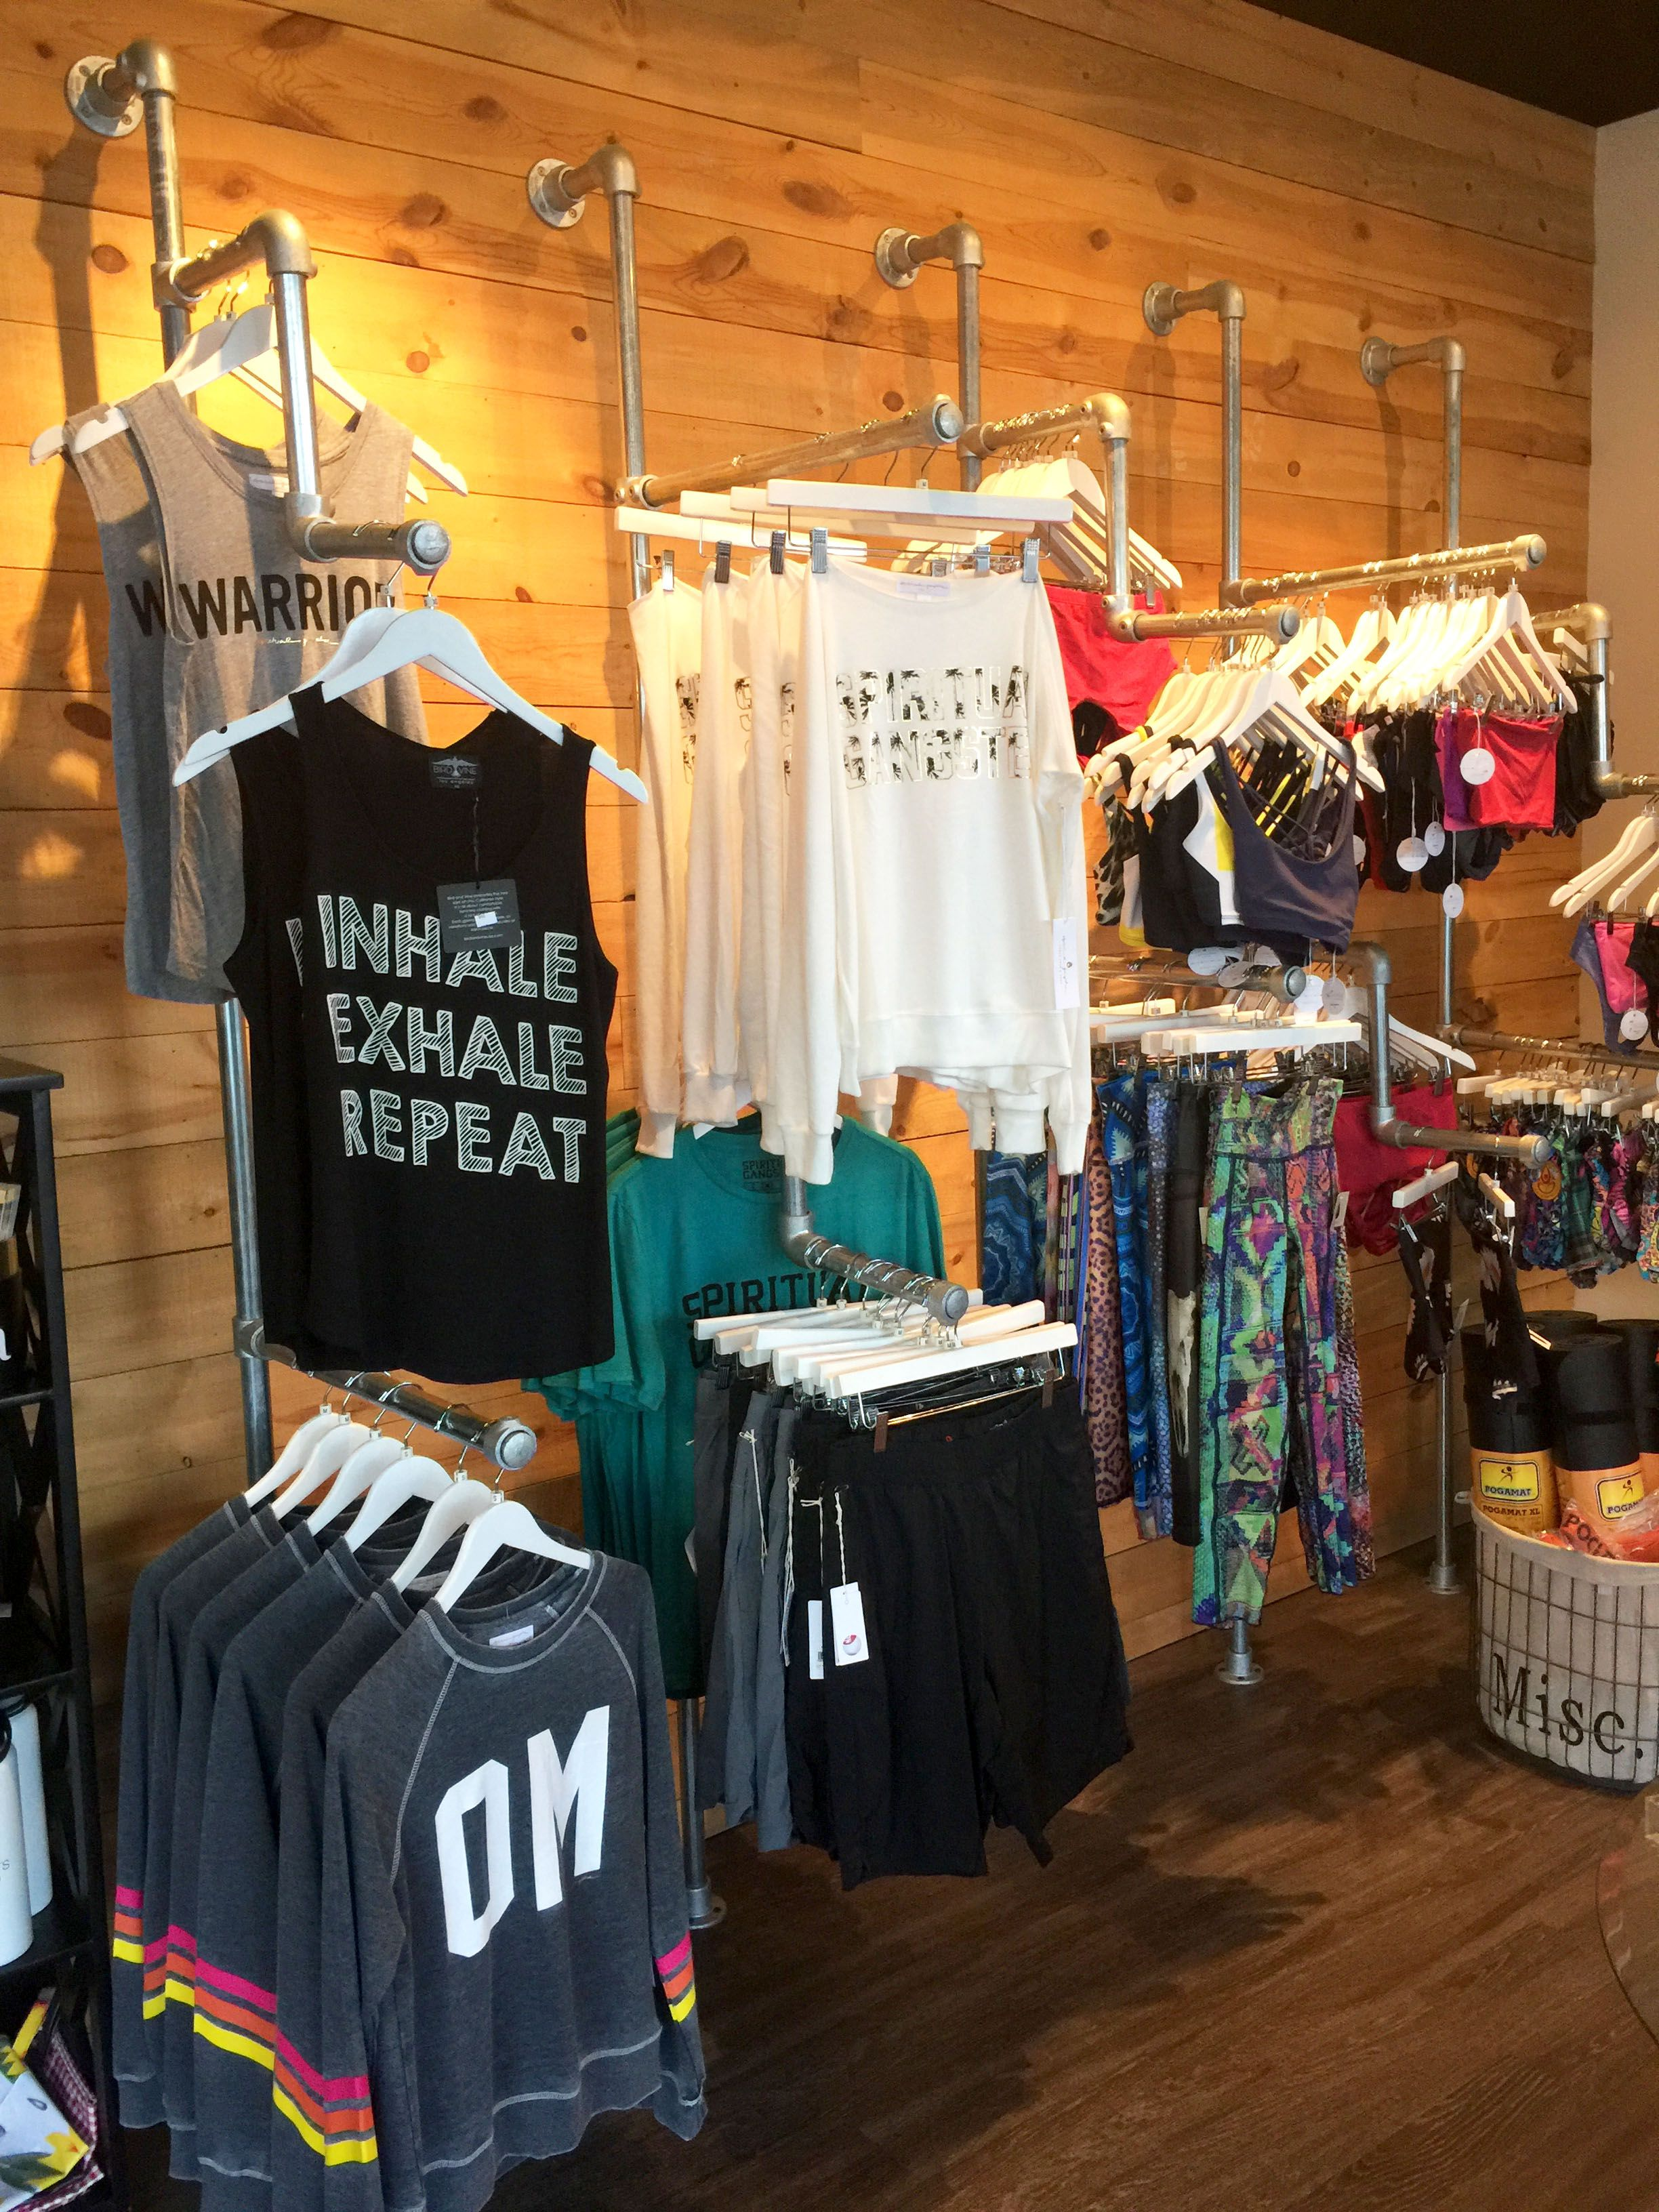 39 DIY Retail Display Ideas (from Clothing Racks to Signage